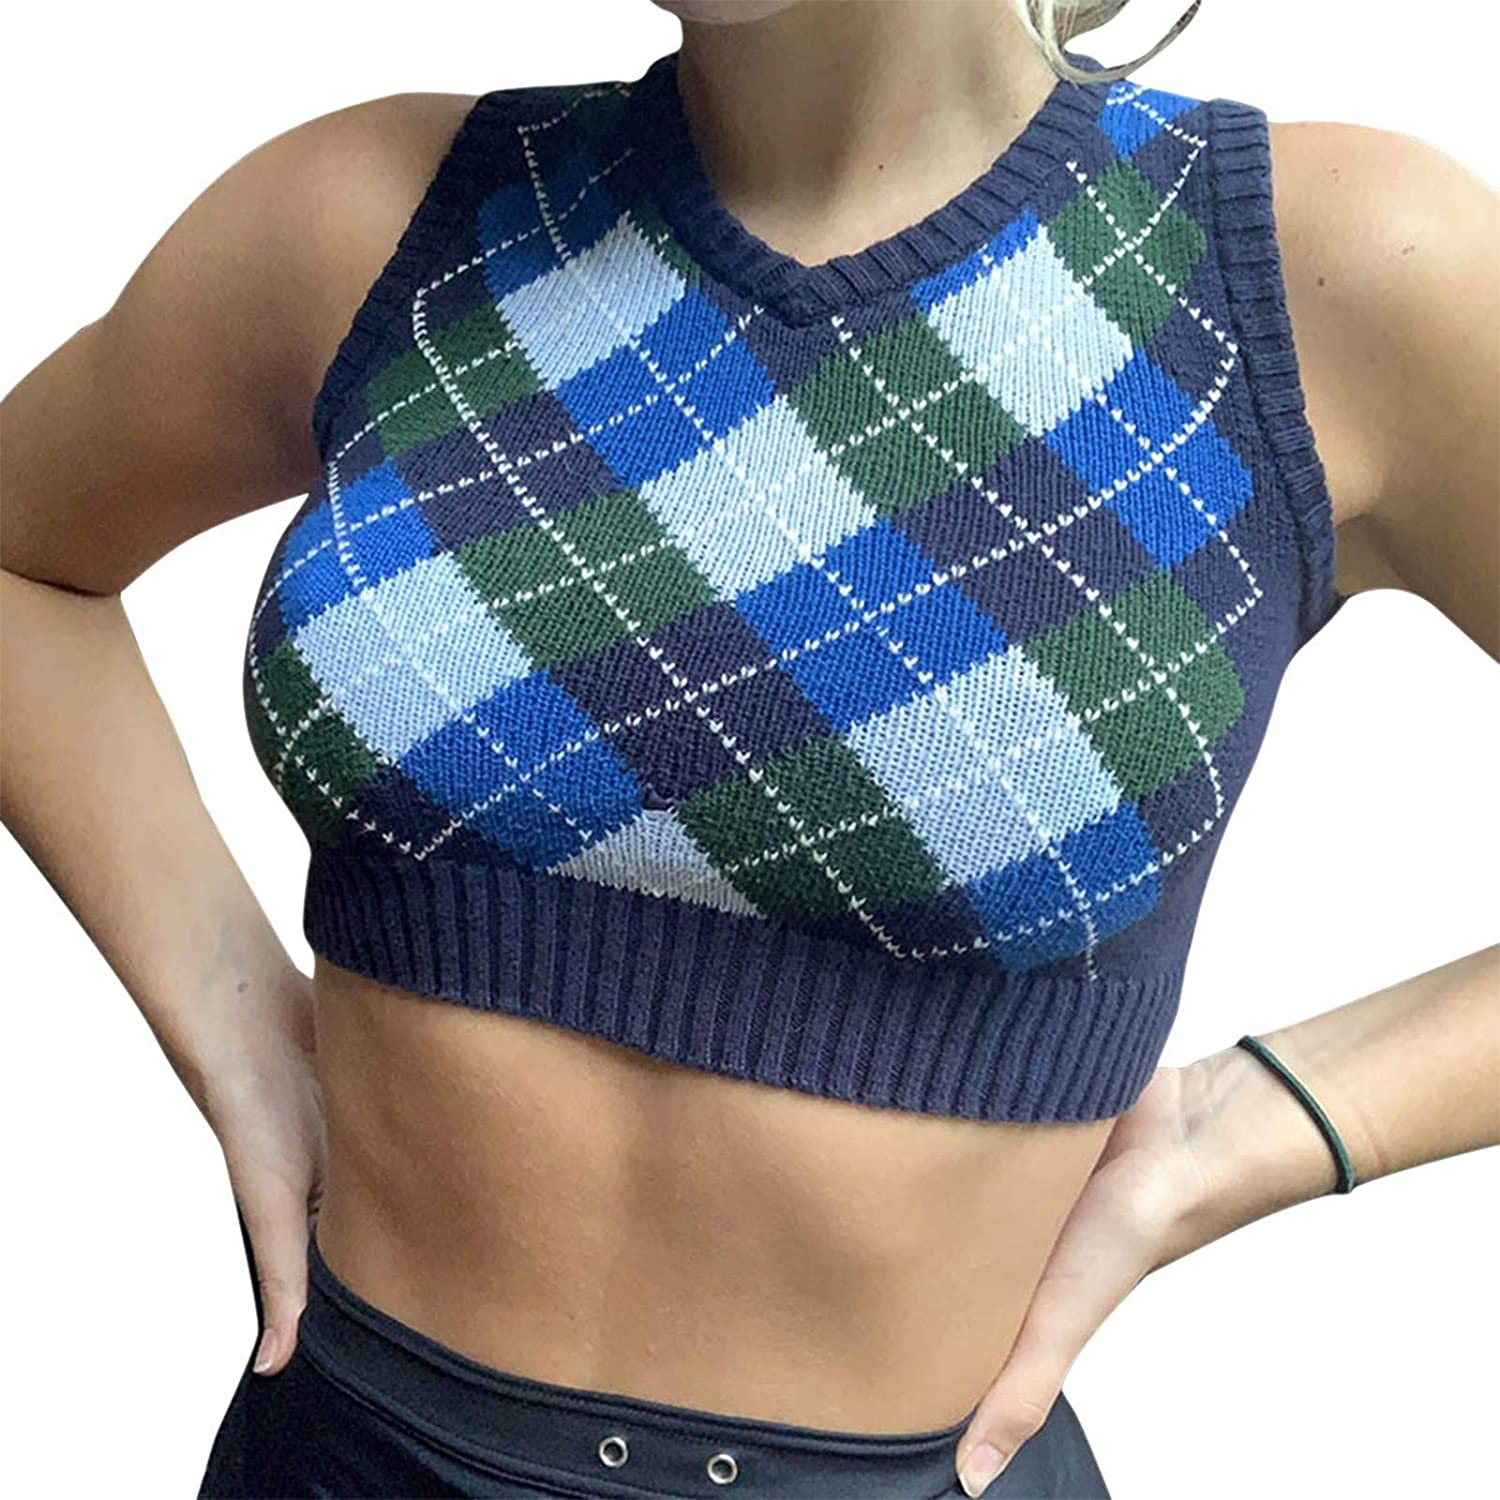 Women's Knitted Cotton V-Neck Vest JK Uniform Pullover Y2k 90s E-Girl Sleeveless Crop Sweater School Cardigan (Blue Checkered Crop Top,Small)